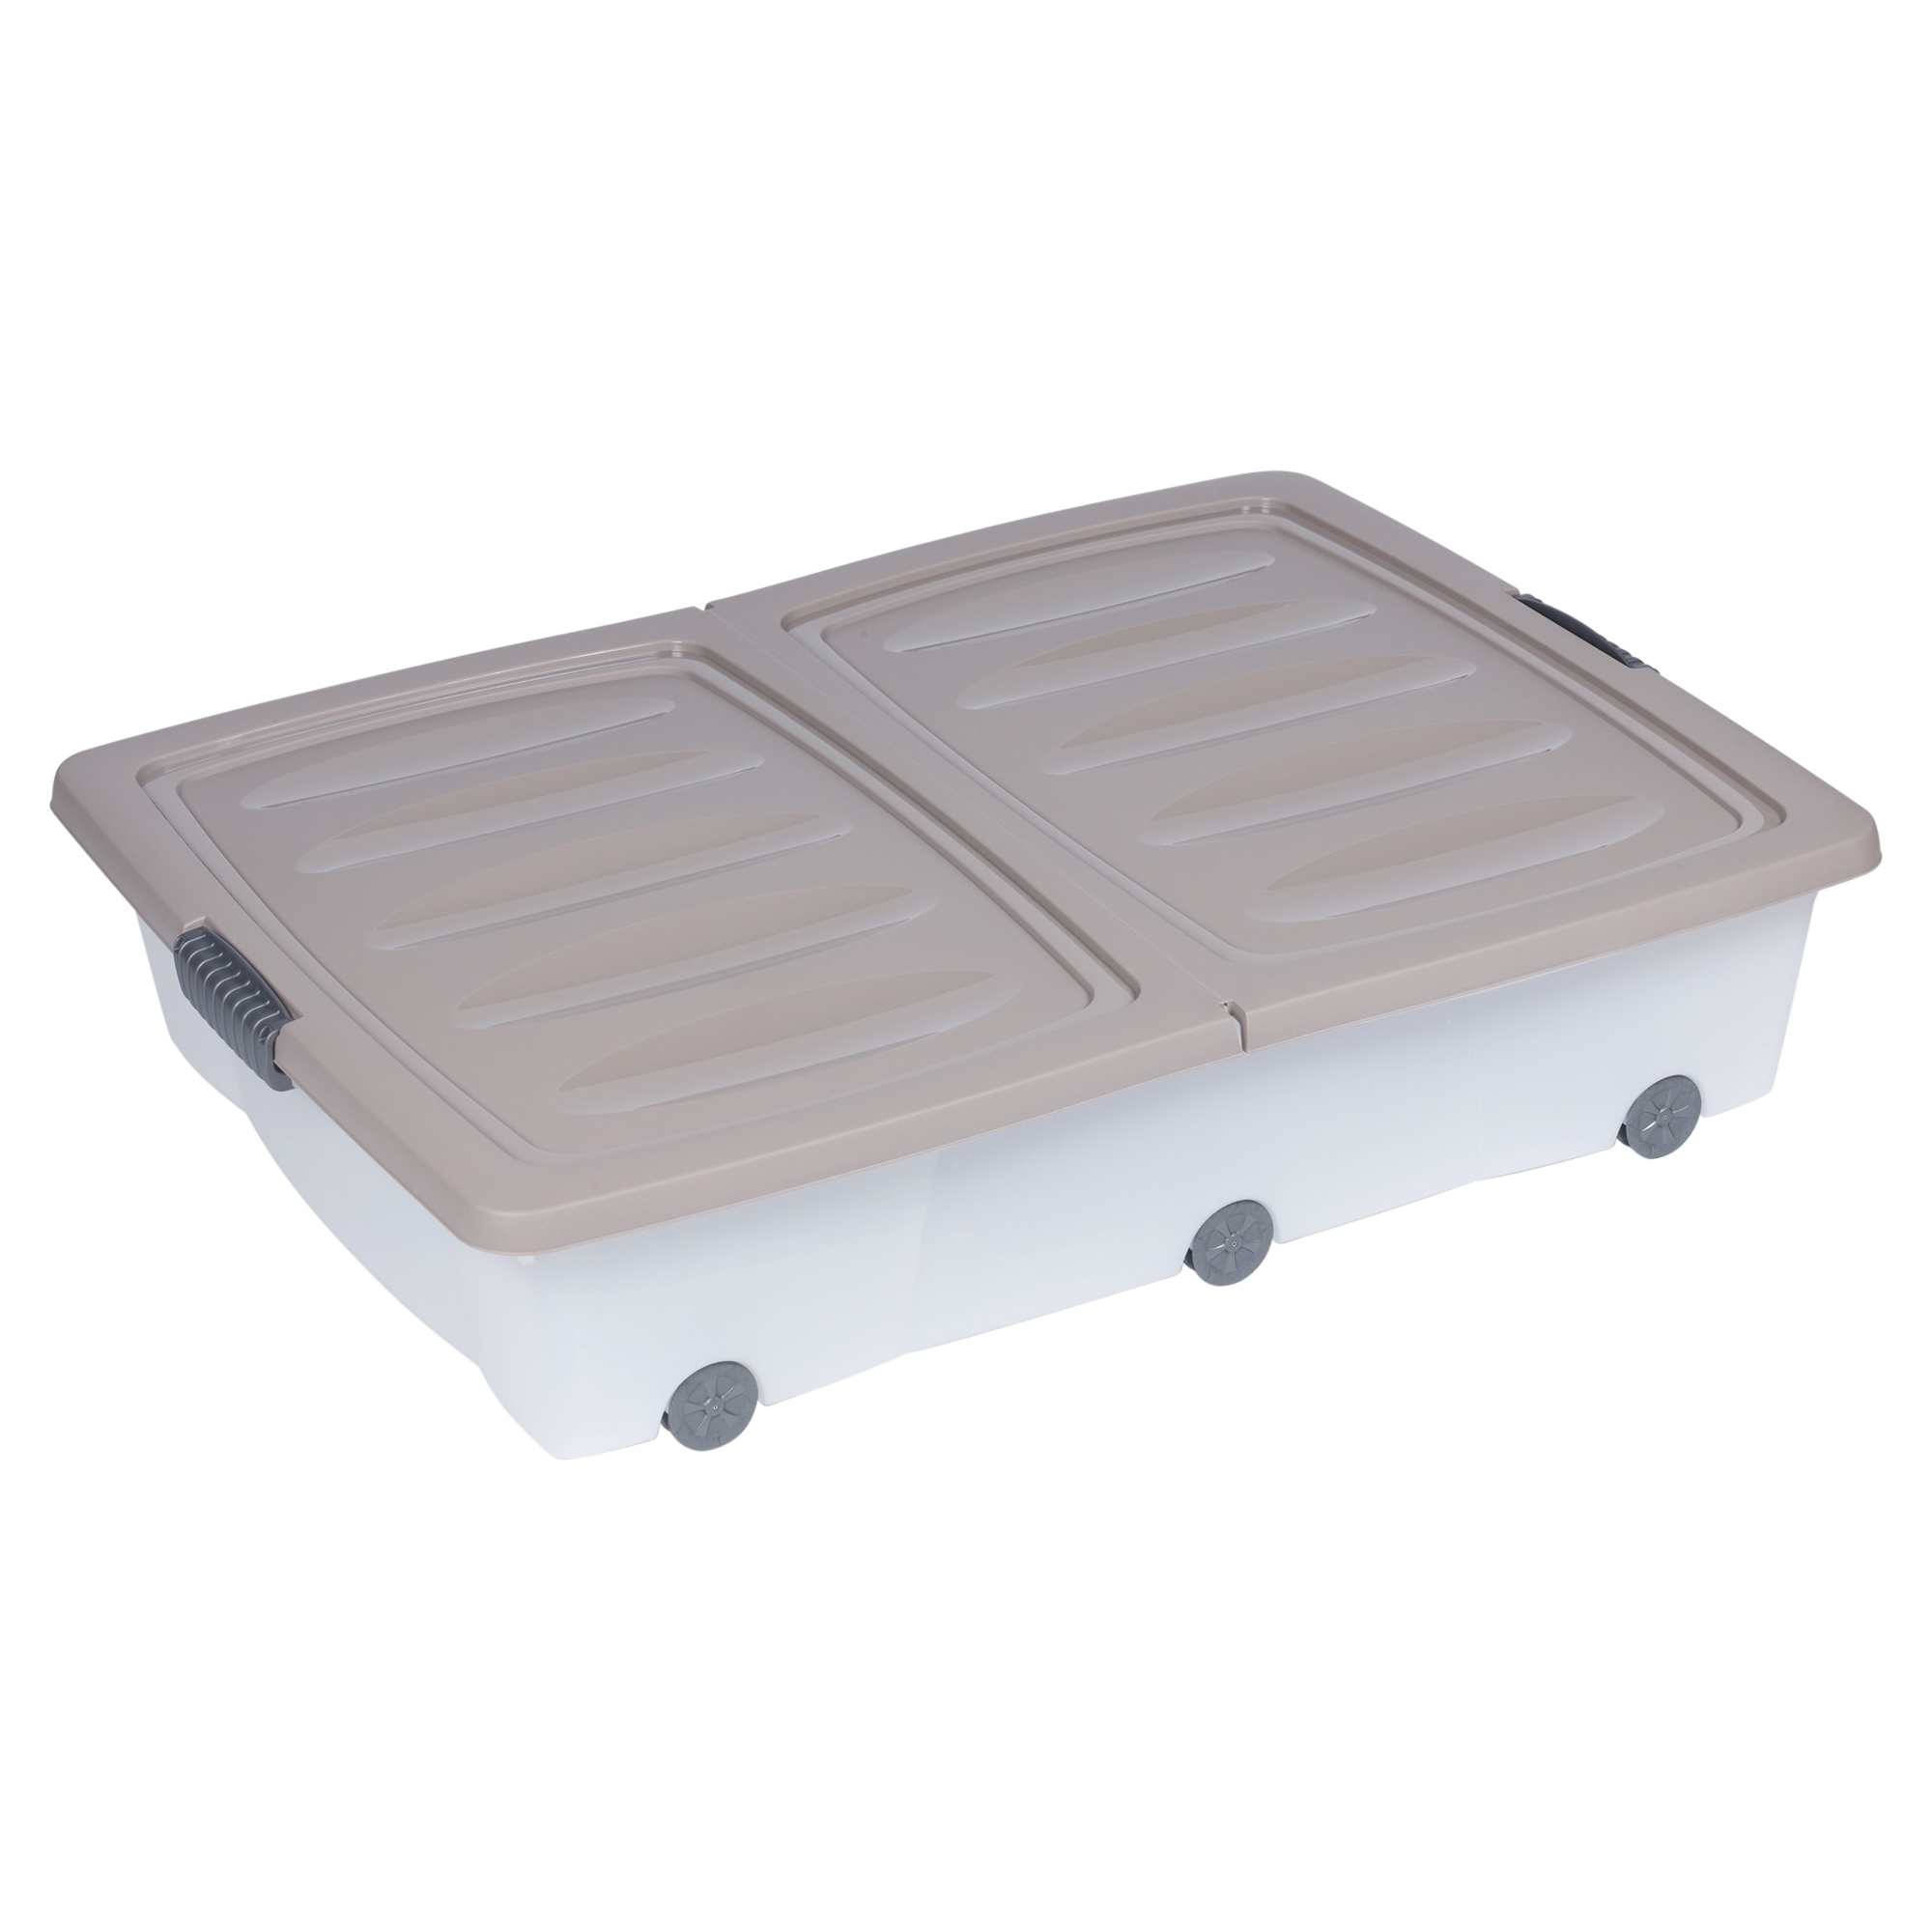 70 Litre Large Under Bed Plastic Storage Box Wheeled W